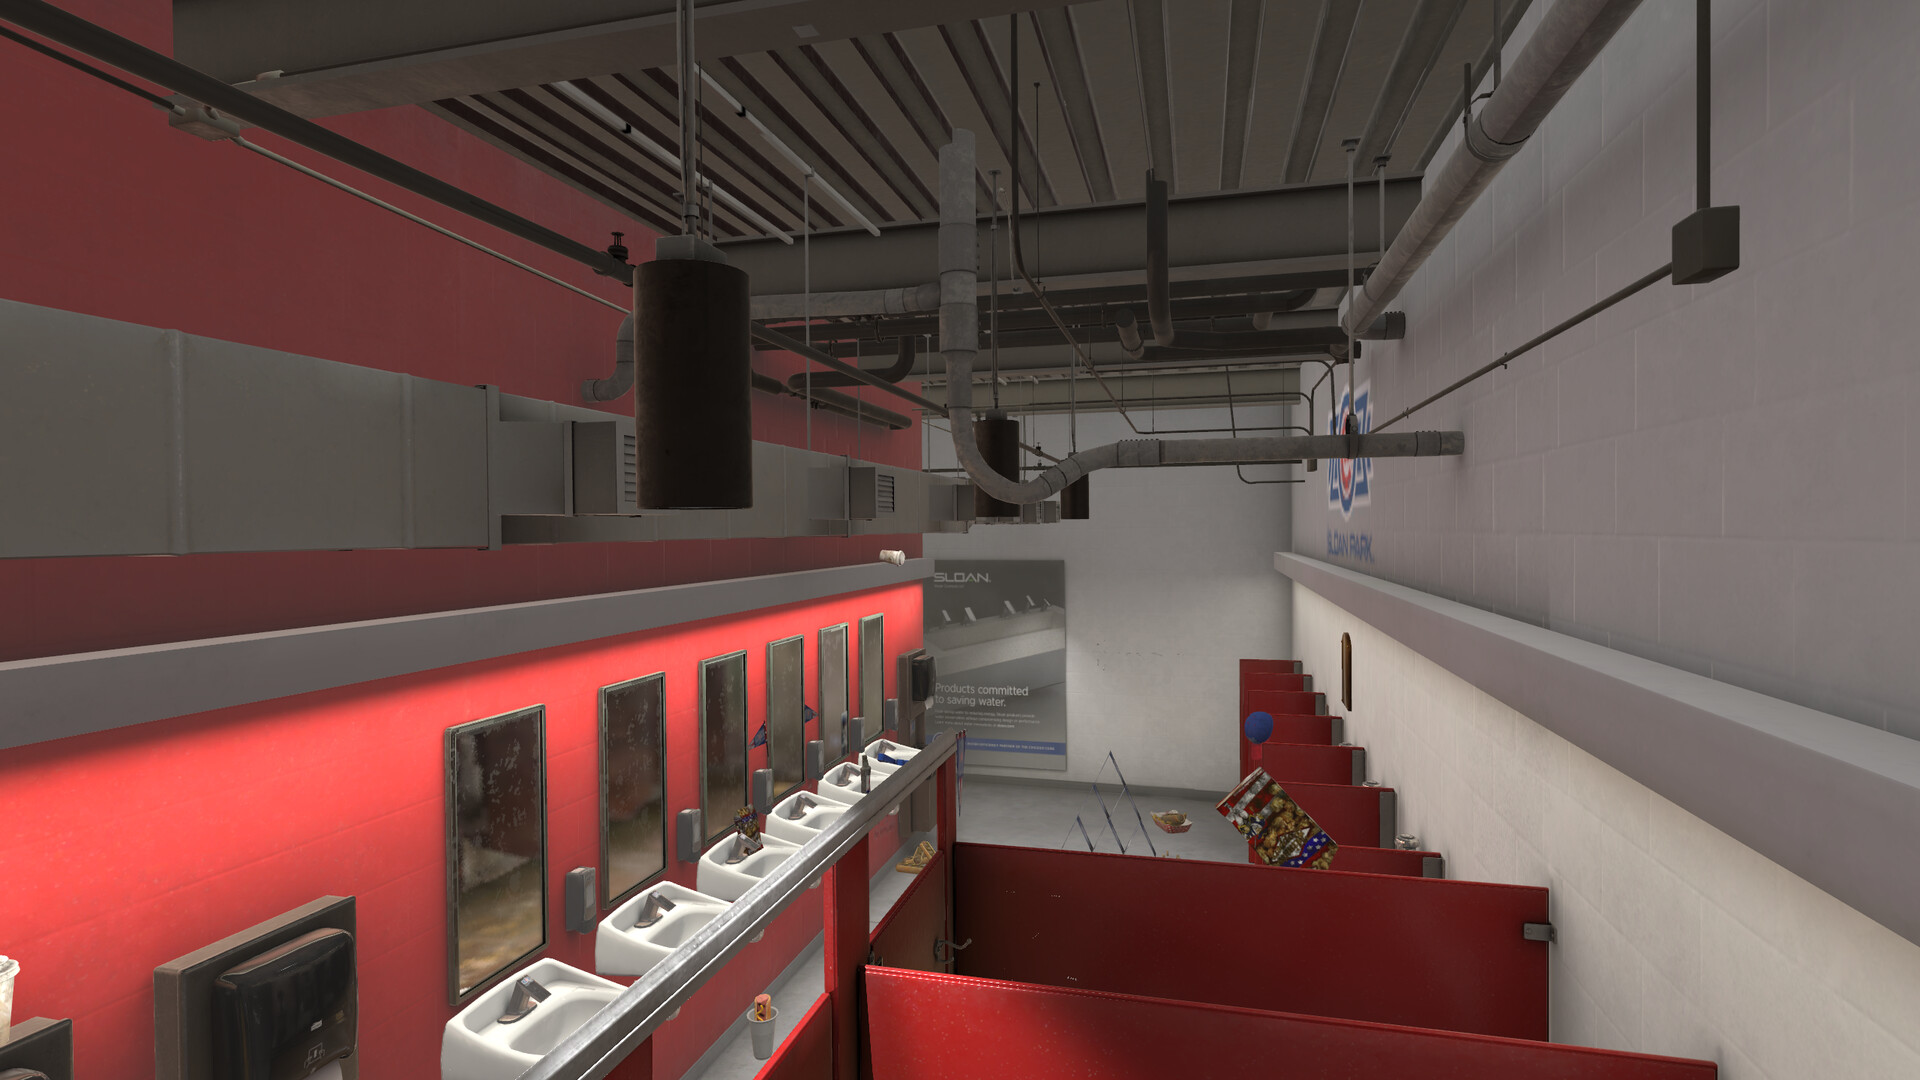 A look at some of the ceiling and pipes that were recreated from the actual stadium.